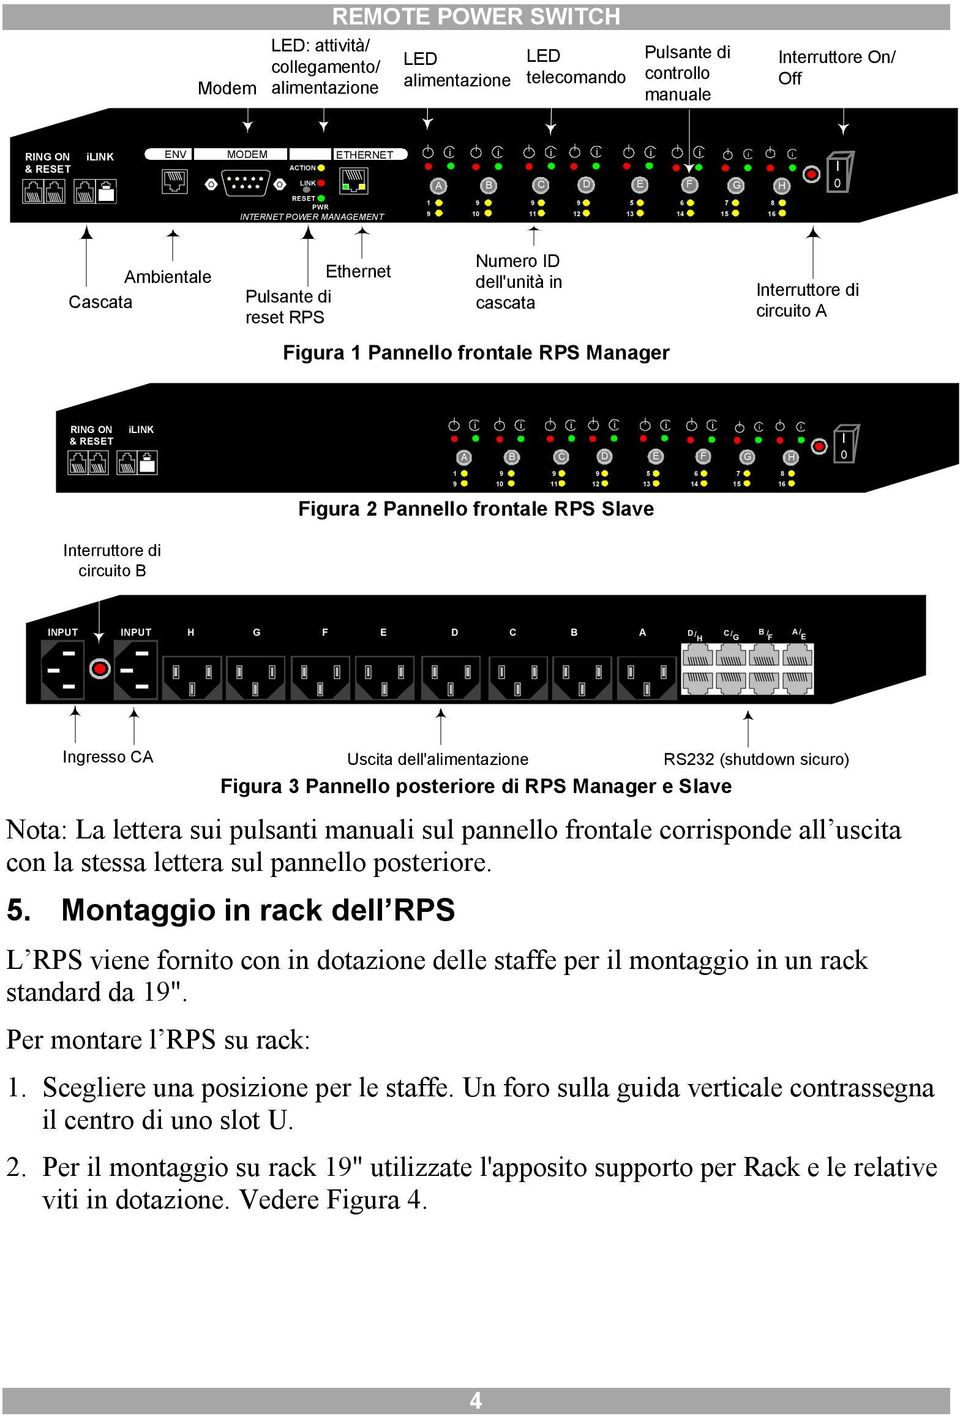 Interruttore d crcuto A RING ON & RESET LINK A B C D E F G H I 0 5 6 7 0 2 3 4 5 6 Fgura 2 Pannello frontale RPS Slave Interruttore d crcuto B INPUT INPUT H G F E D C B A D/ C/ B / A/ H G F E